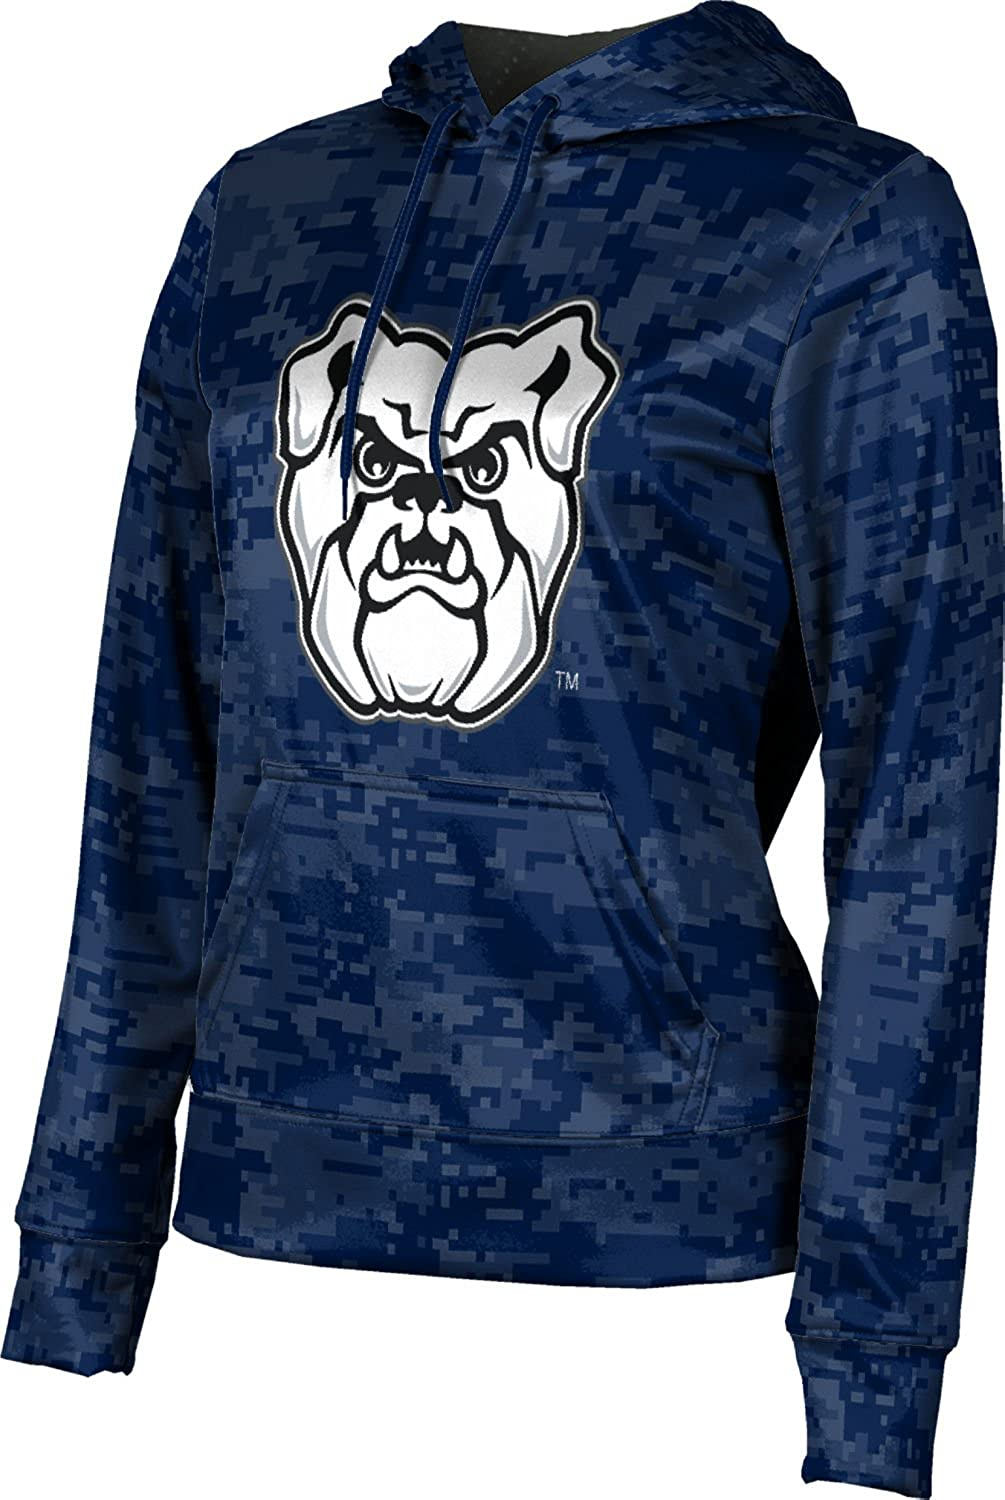 ProSphere Our shop OFFers the best service Butler University Women's Spir School Pullover Hoodie OFFicial mail order